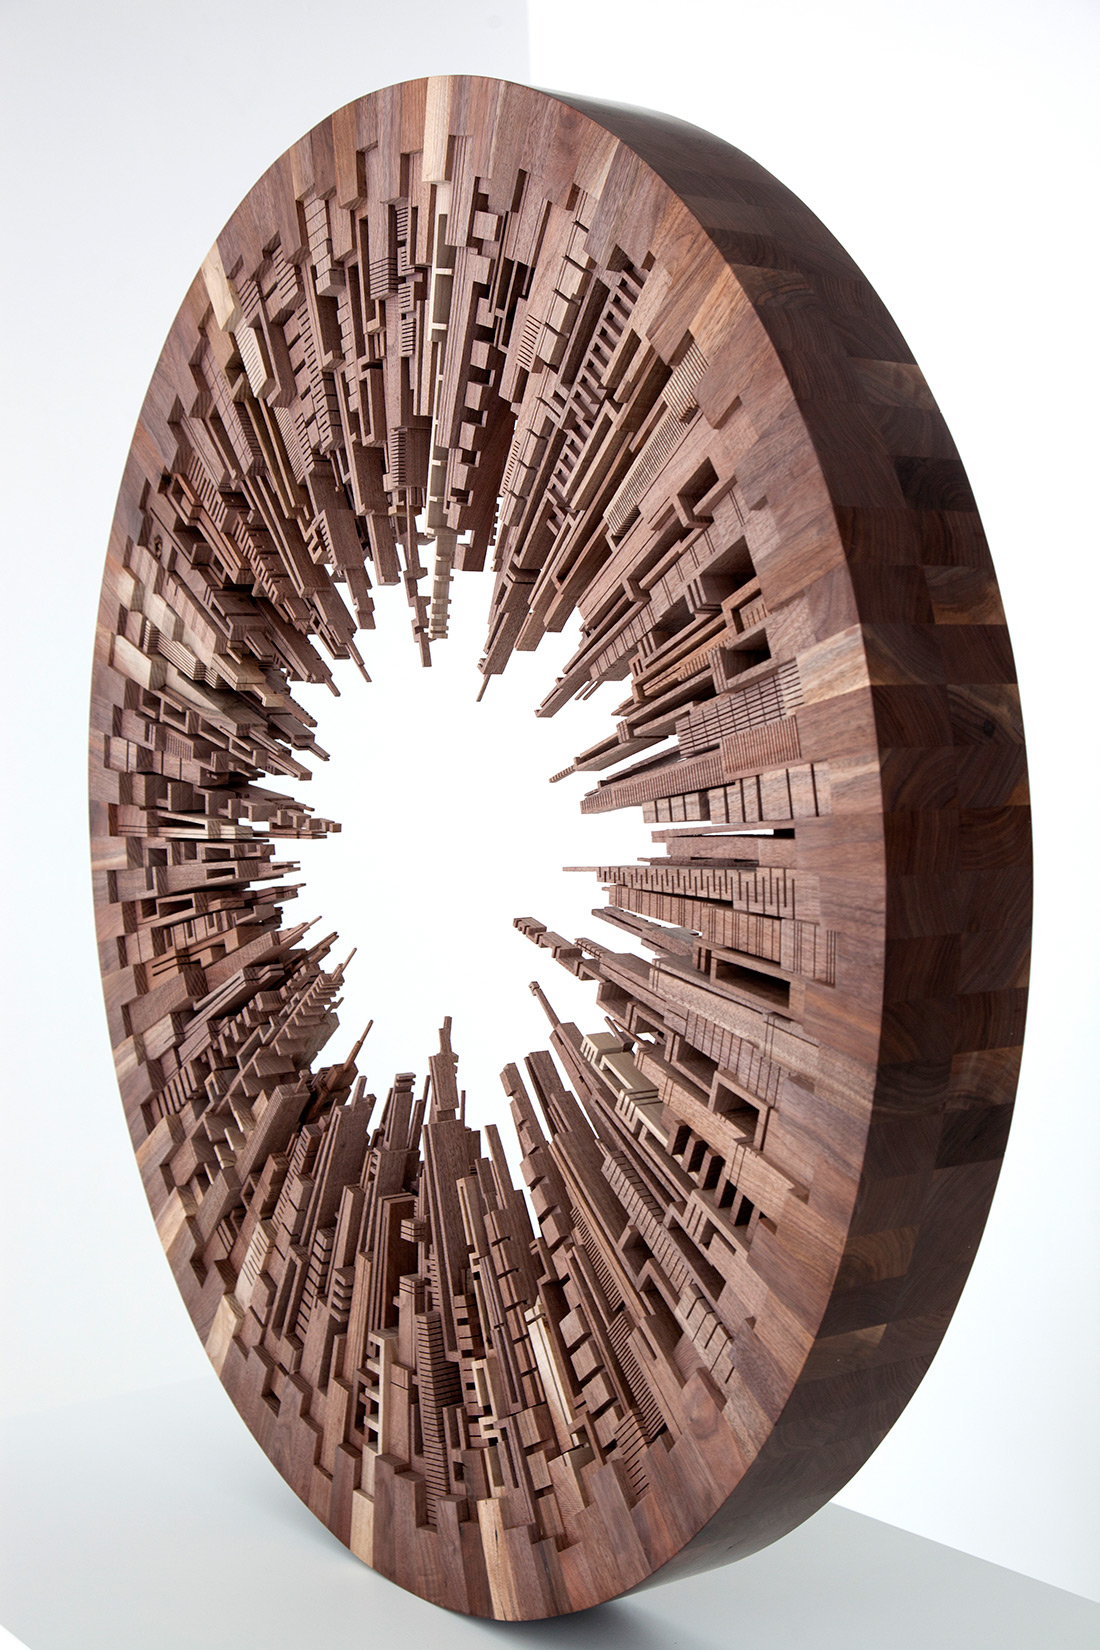 New Wooden Cityscapes Sculpted with a Bandsaw by James McNabb | Colossal